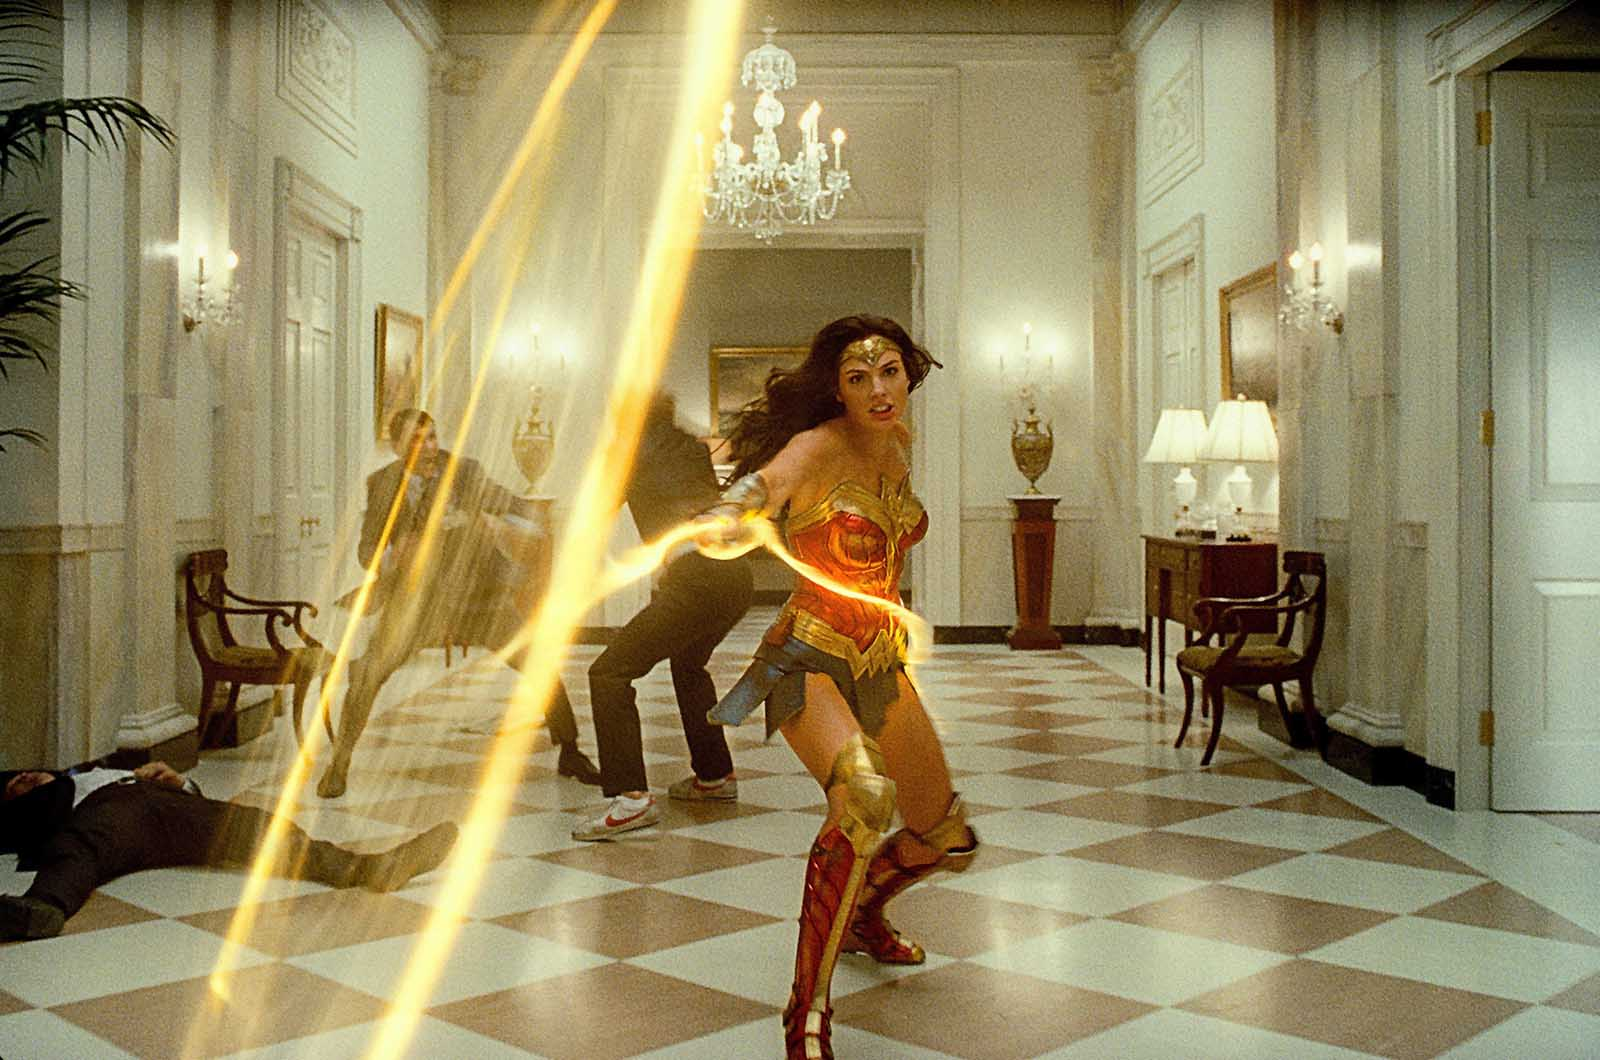 'Wonder Woman 1984' has seen multiple release dates thanks to COVID-19. What's the latest release date for the film? Get the details here.